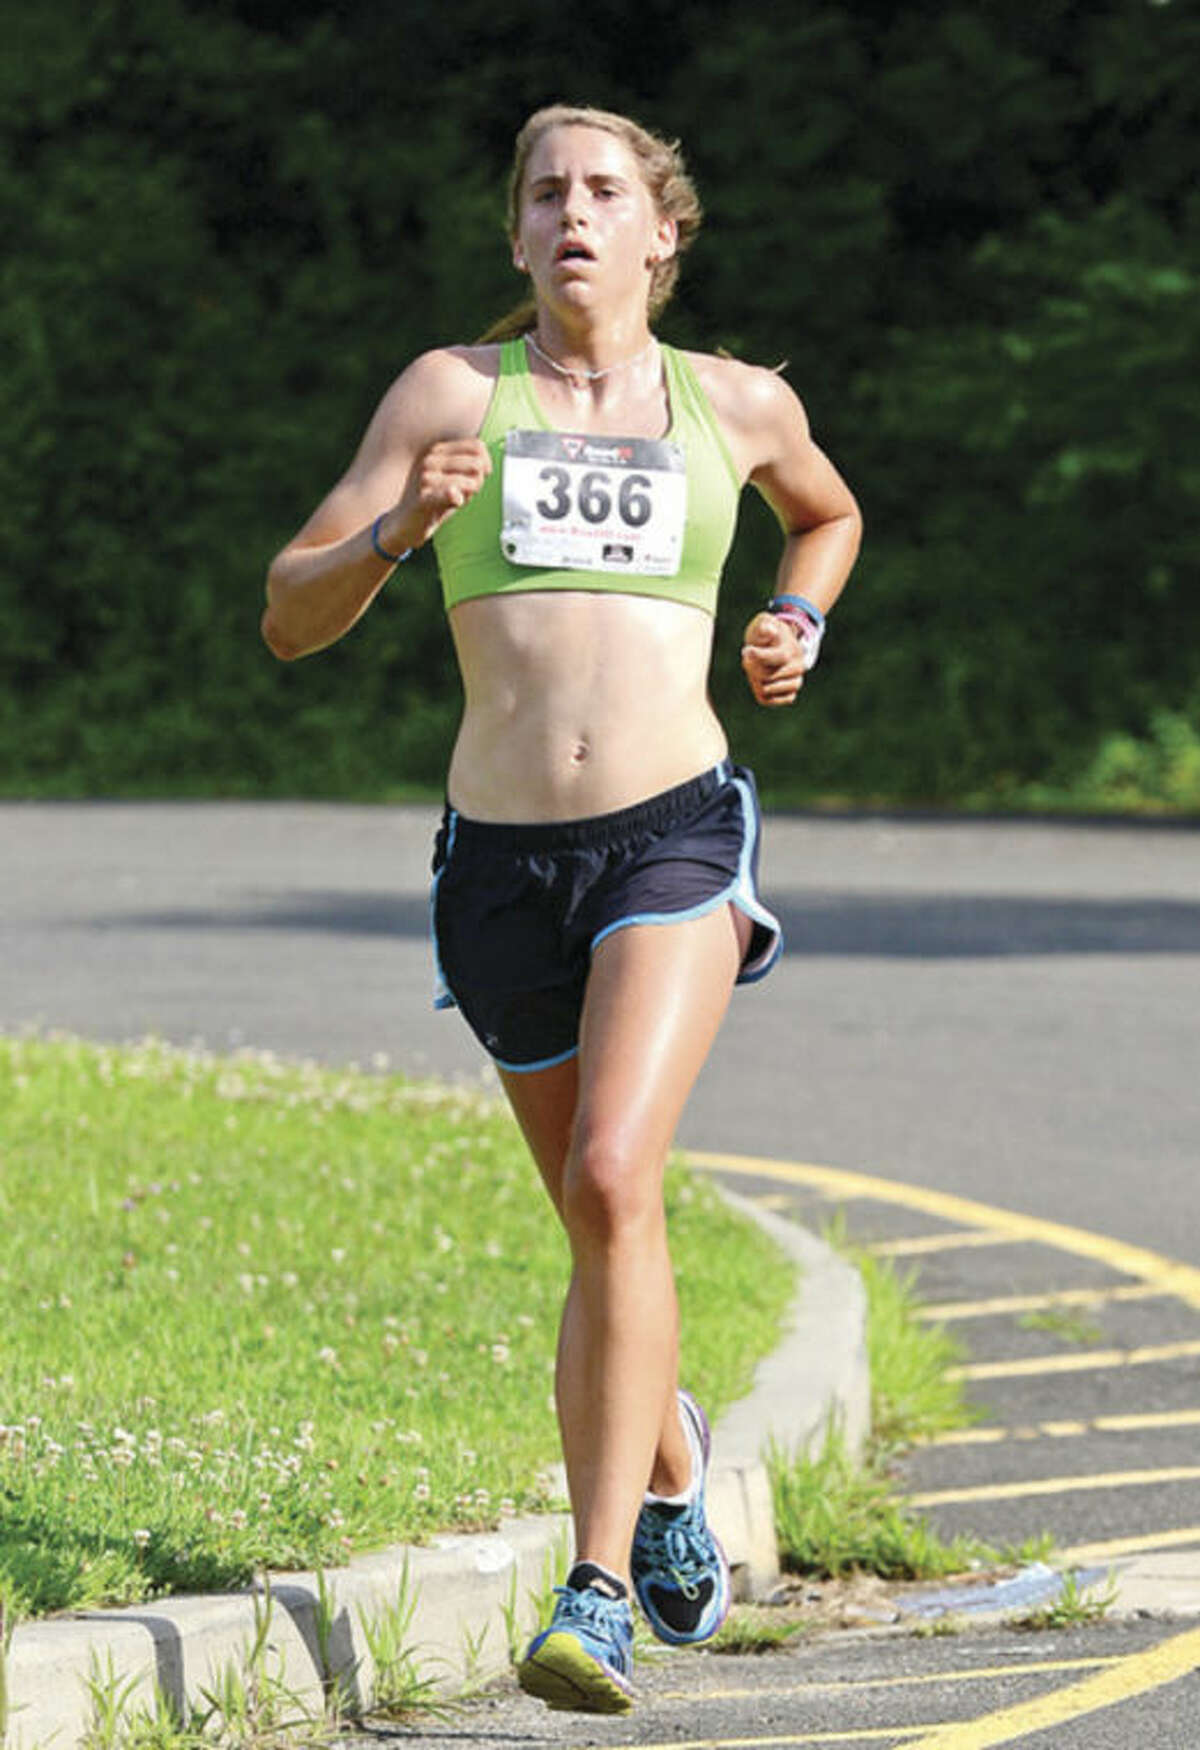 Hour photo / Erik Trautmann Anne Johnston finishes first for the women in the Lightfoot Road Runners road race, a 7-miler at Brien McMahon High School Saturday.